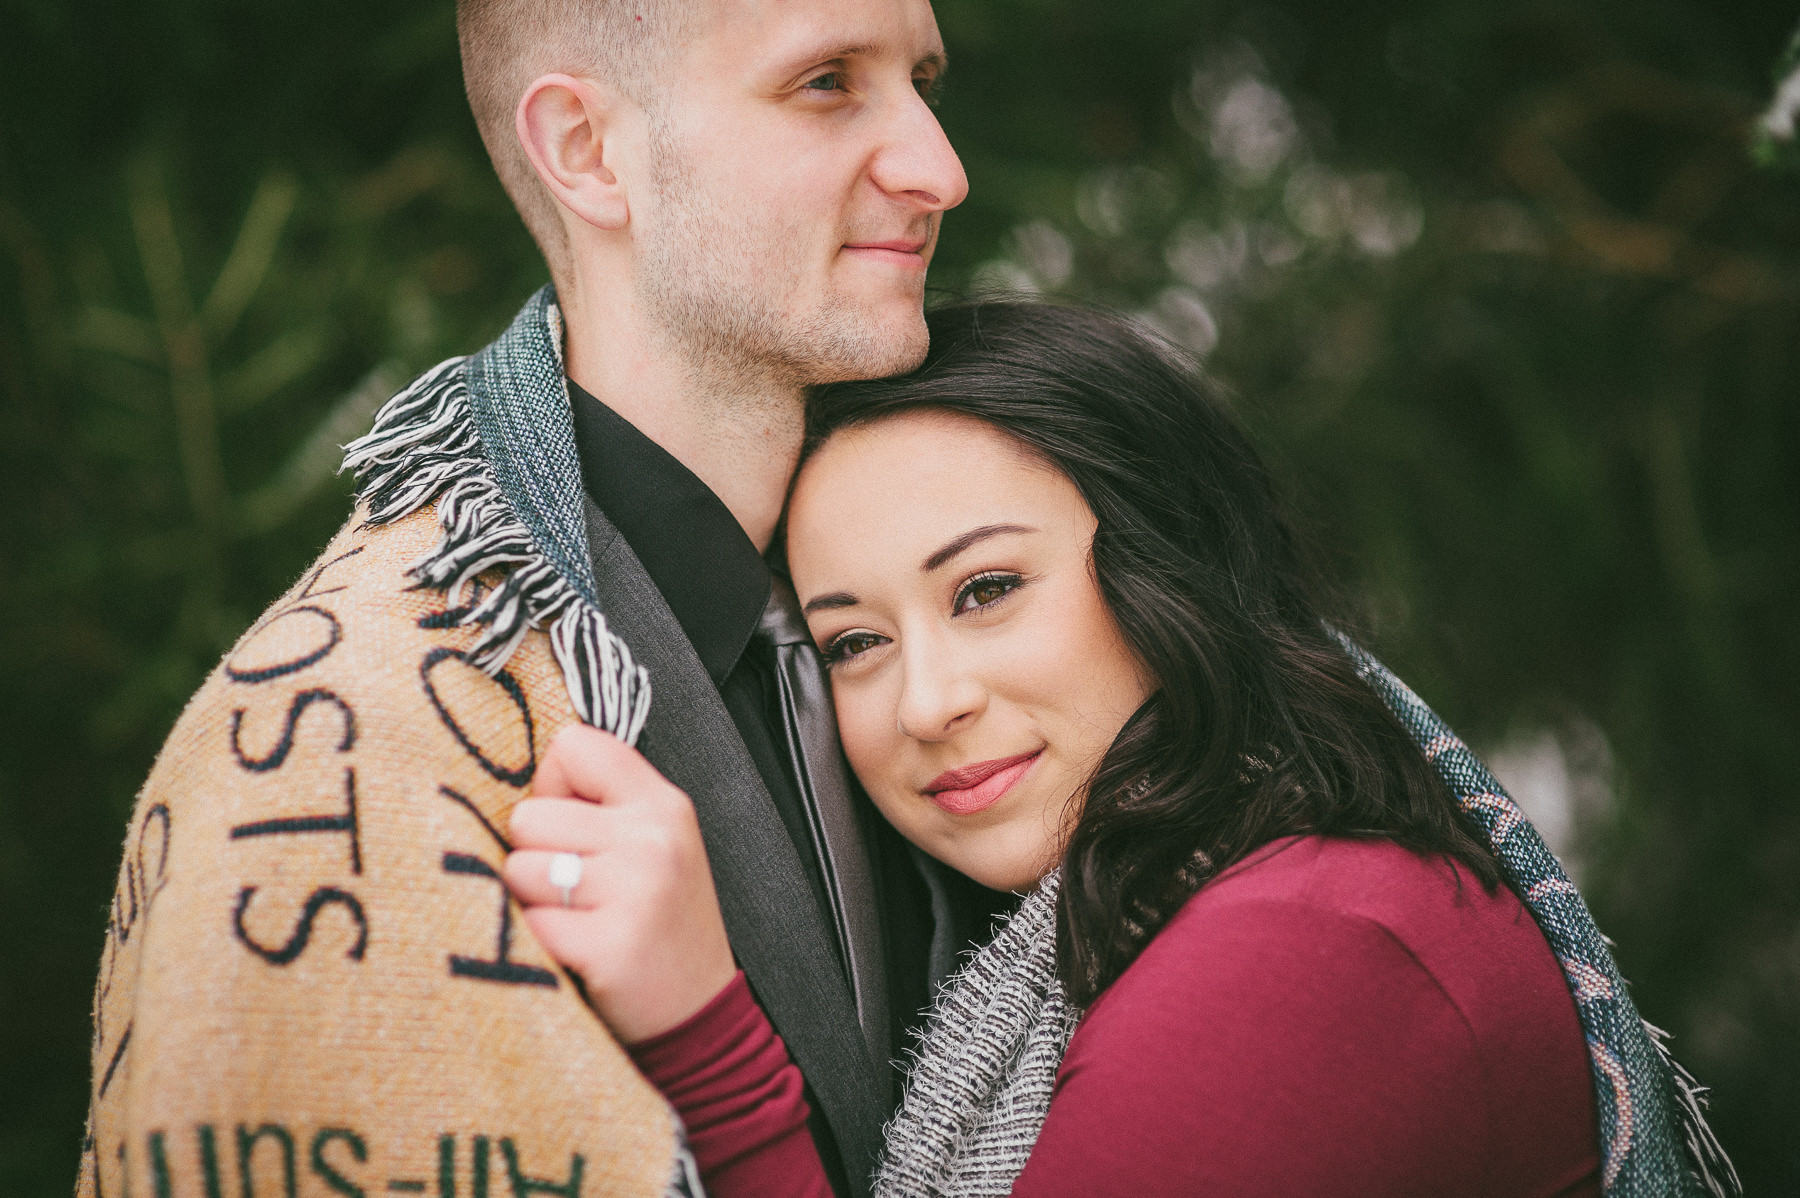 breighton-and-basette-photography-copyrighted-image-blog-abigail-and-ryne-engagement-030.jpg